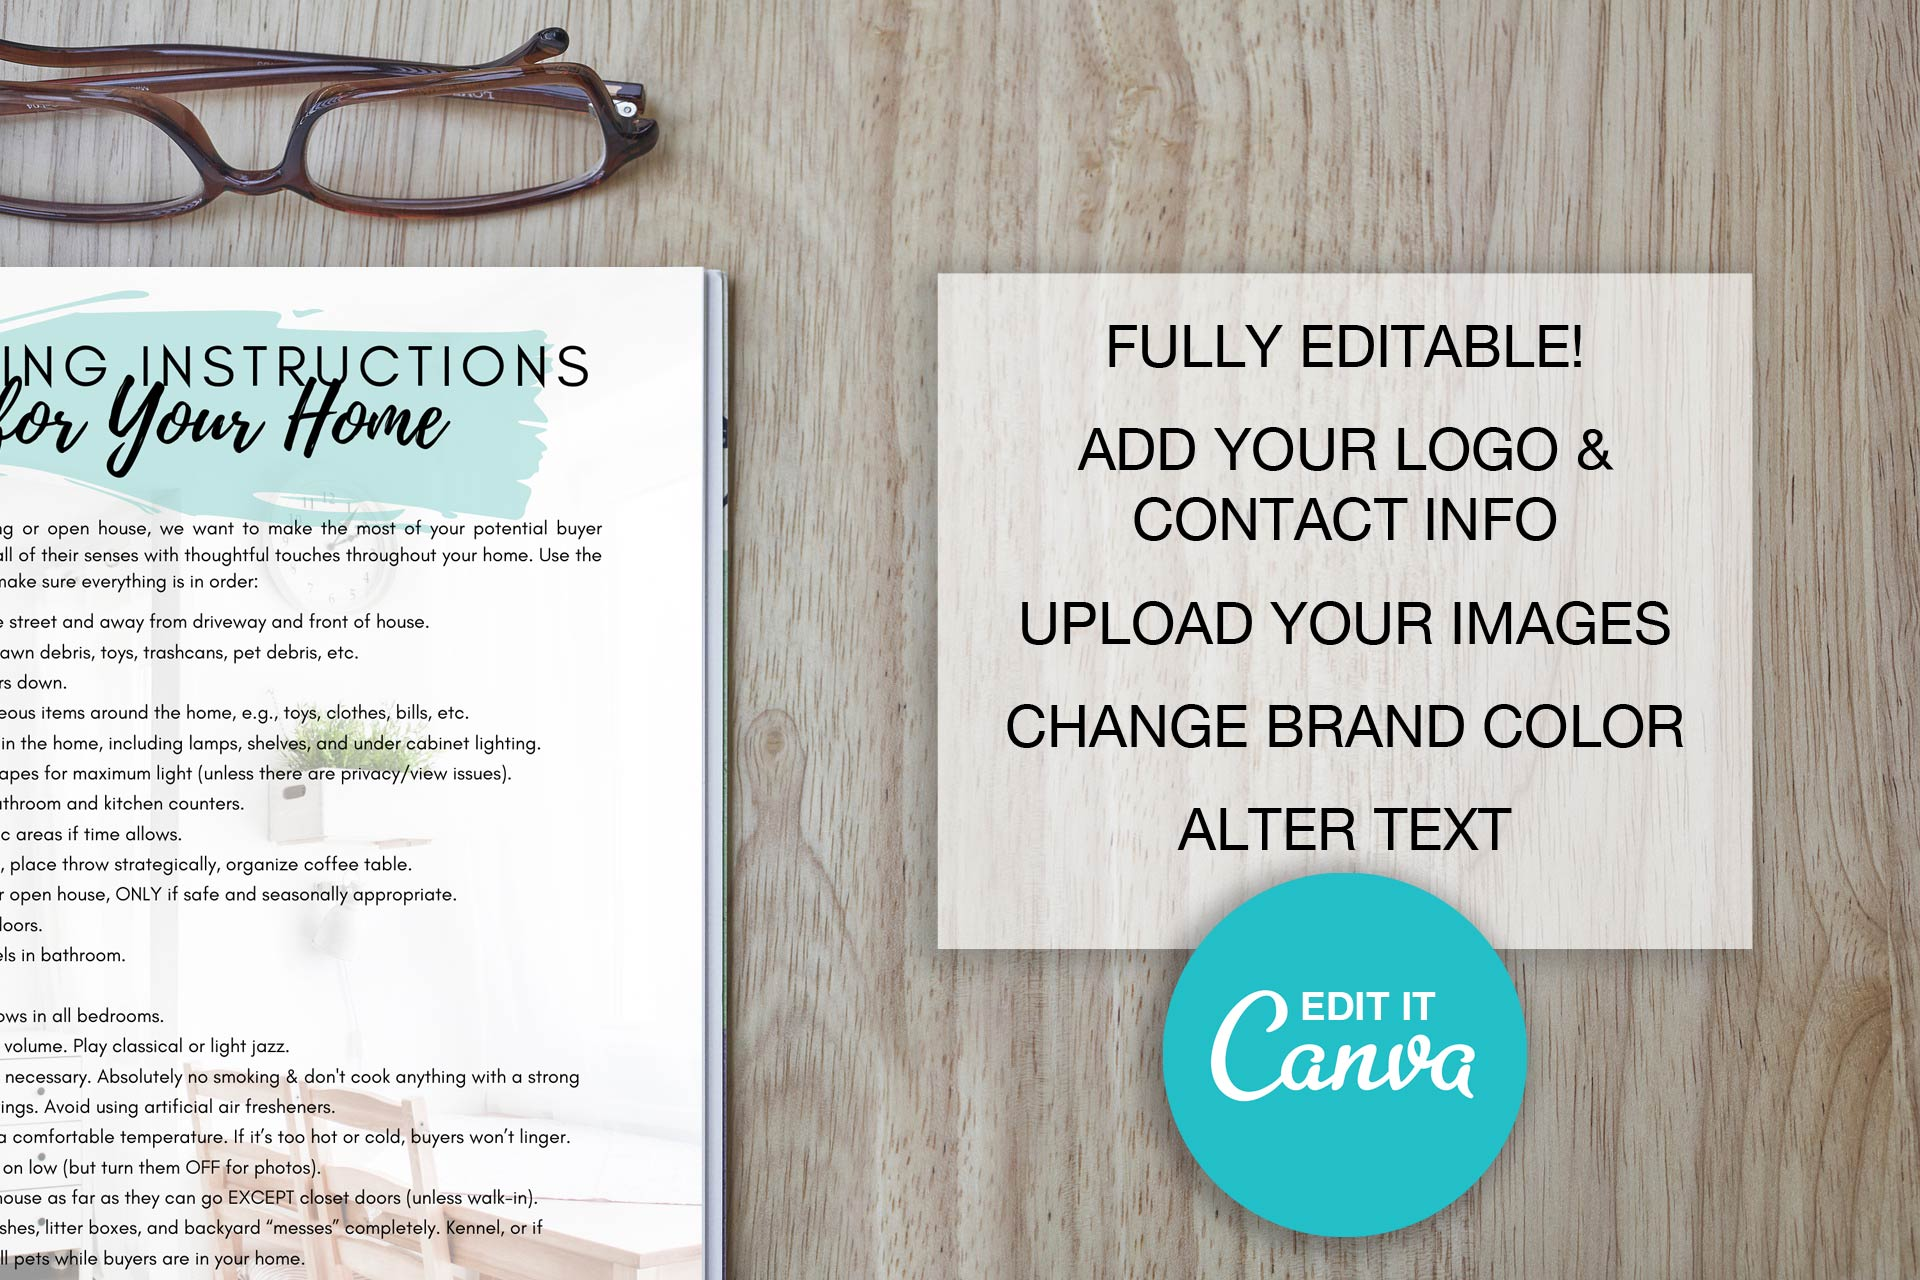 Showing Instructions Checklist Template For Canva Three Bears Home Staging